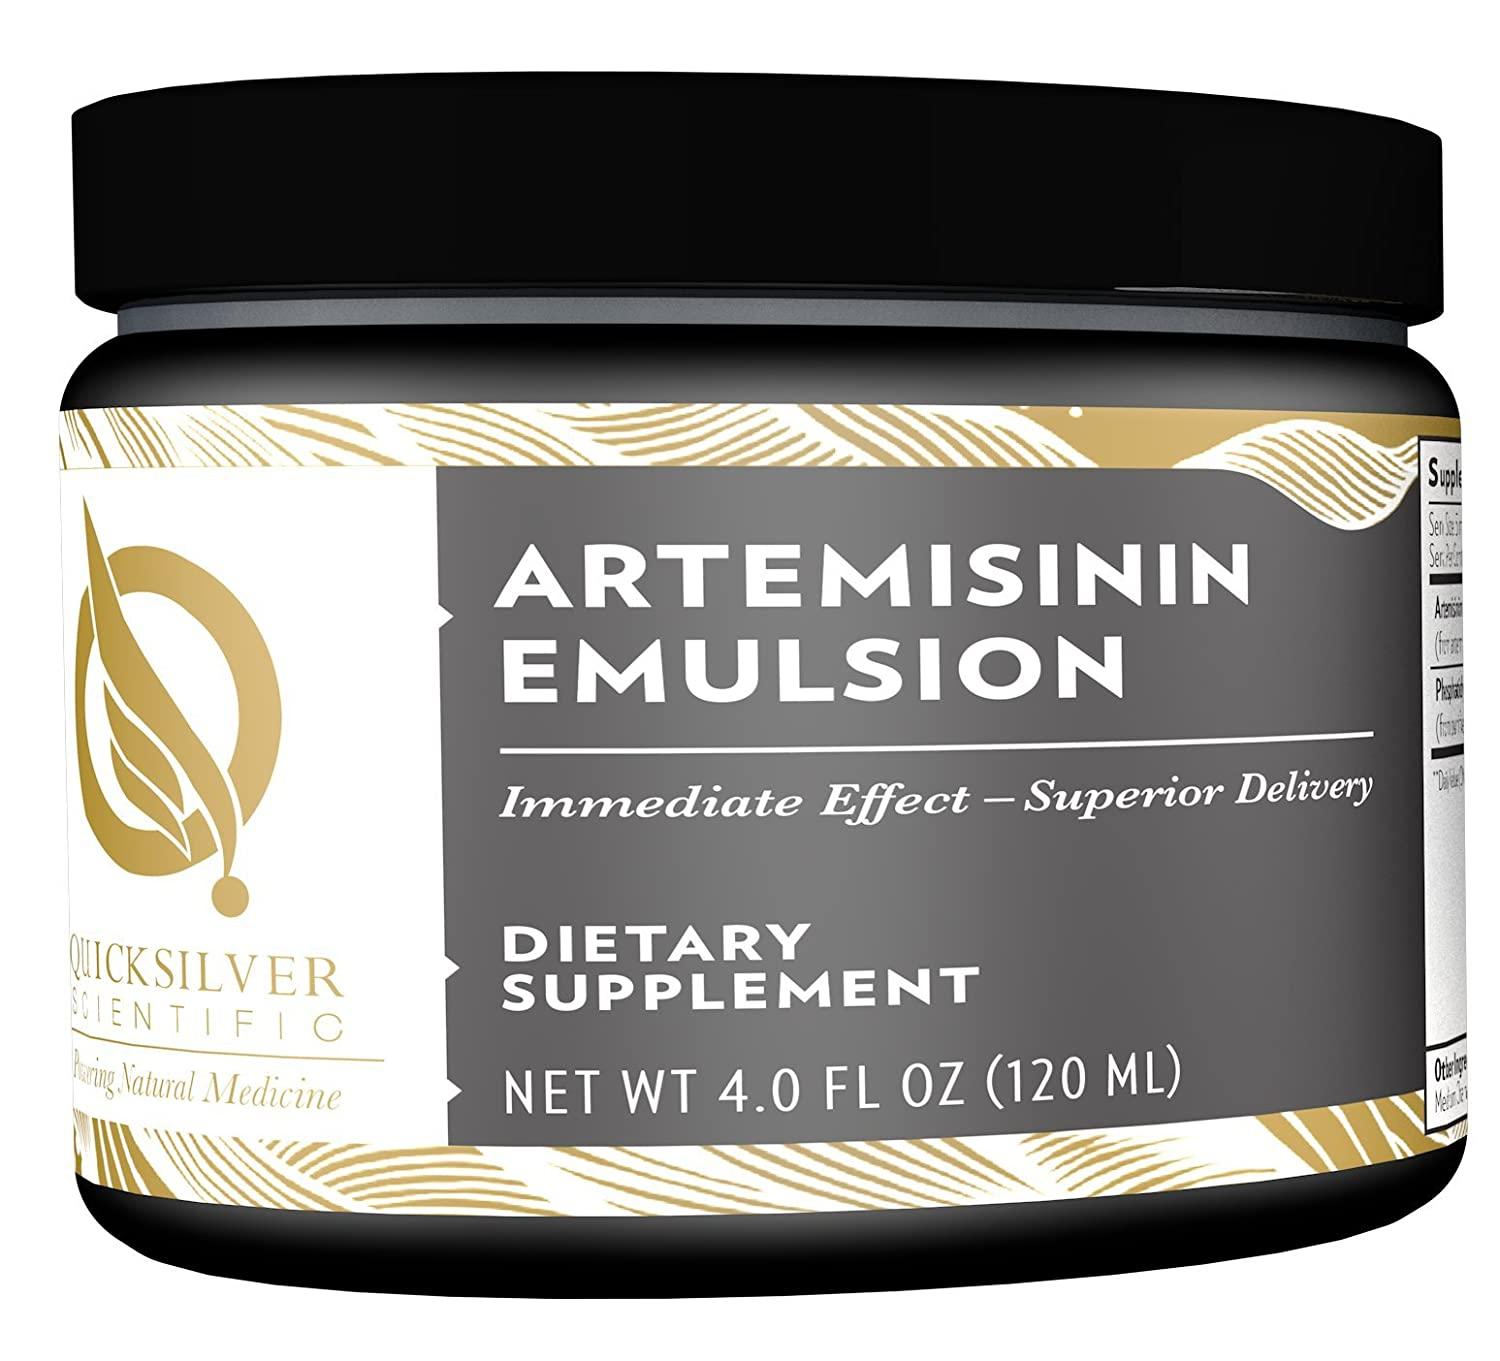 Amazon.com: Quicksilver Scientific Artemisinin Emulsión de ...